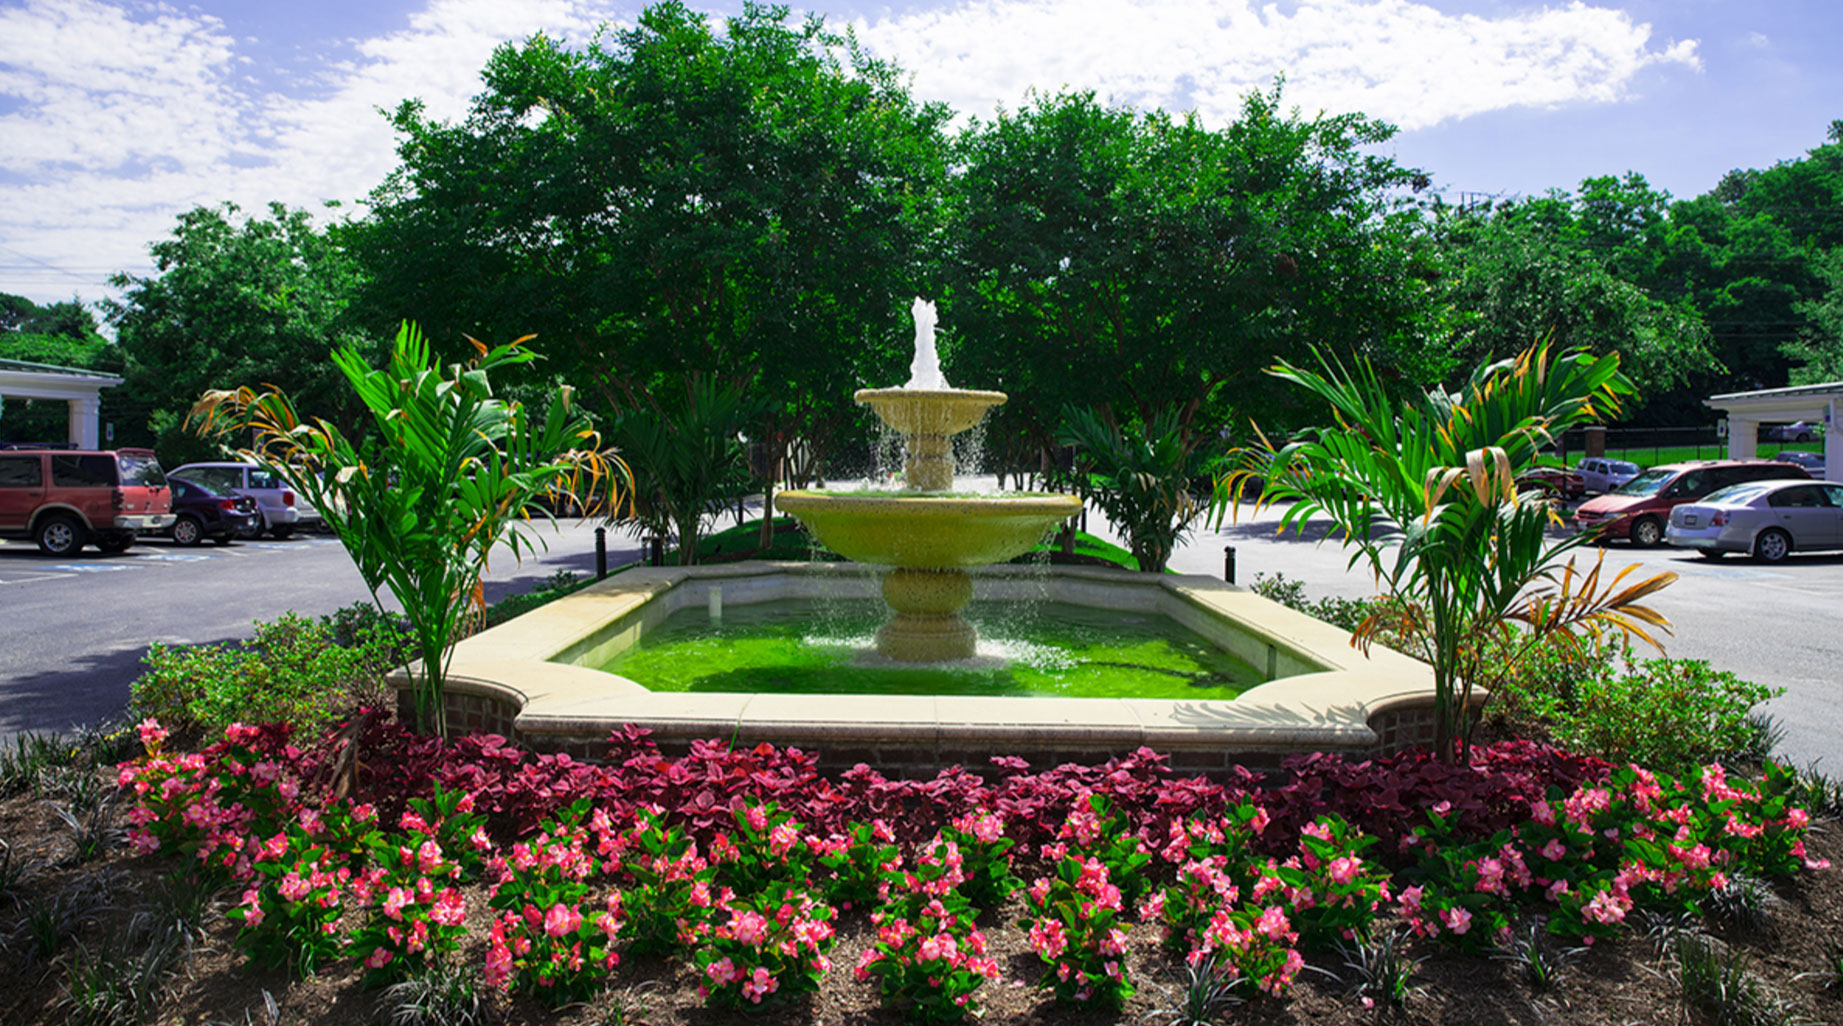 A Dozen Of The Best Native Plants For Your Washington DC Commercial Property